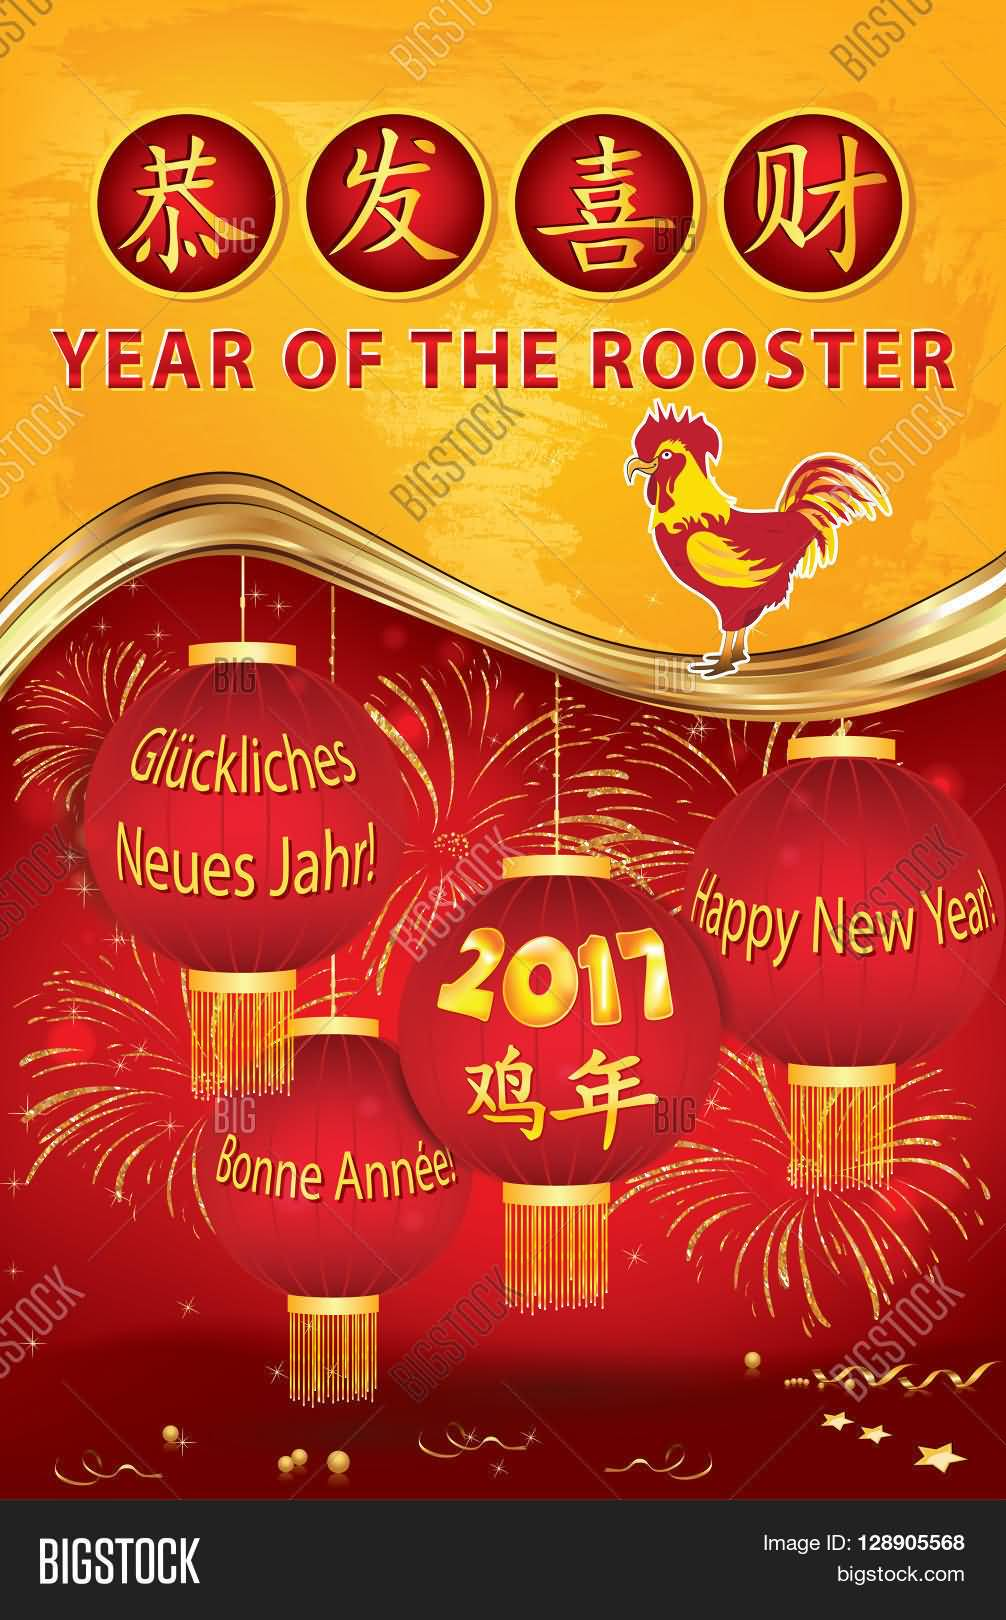 Year Of The Rooster Happy New Year